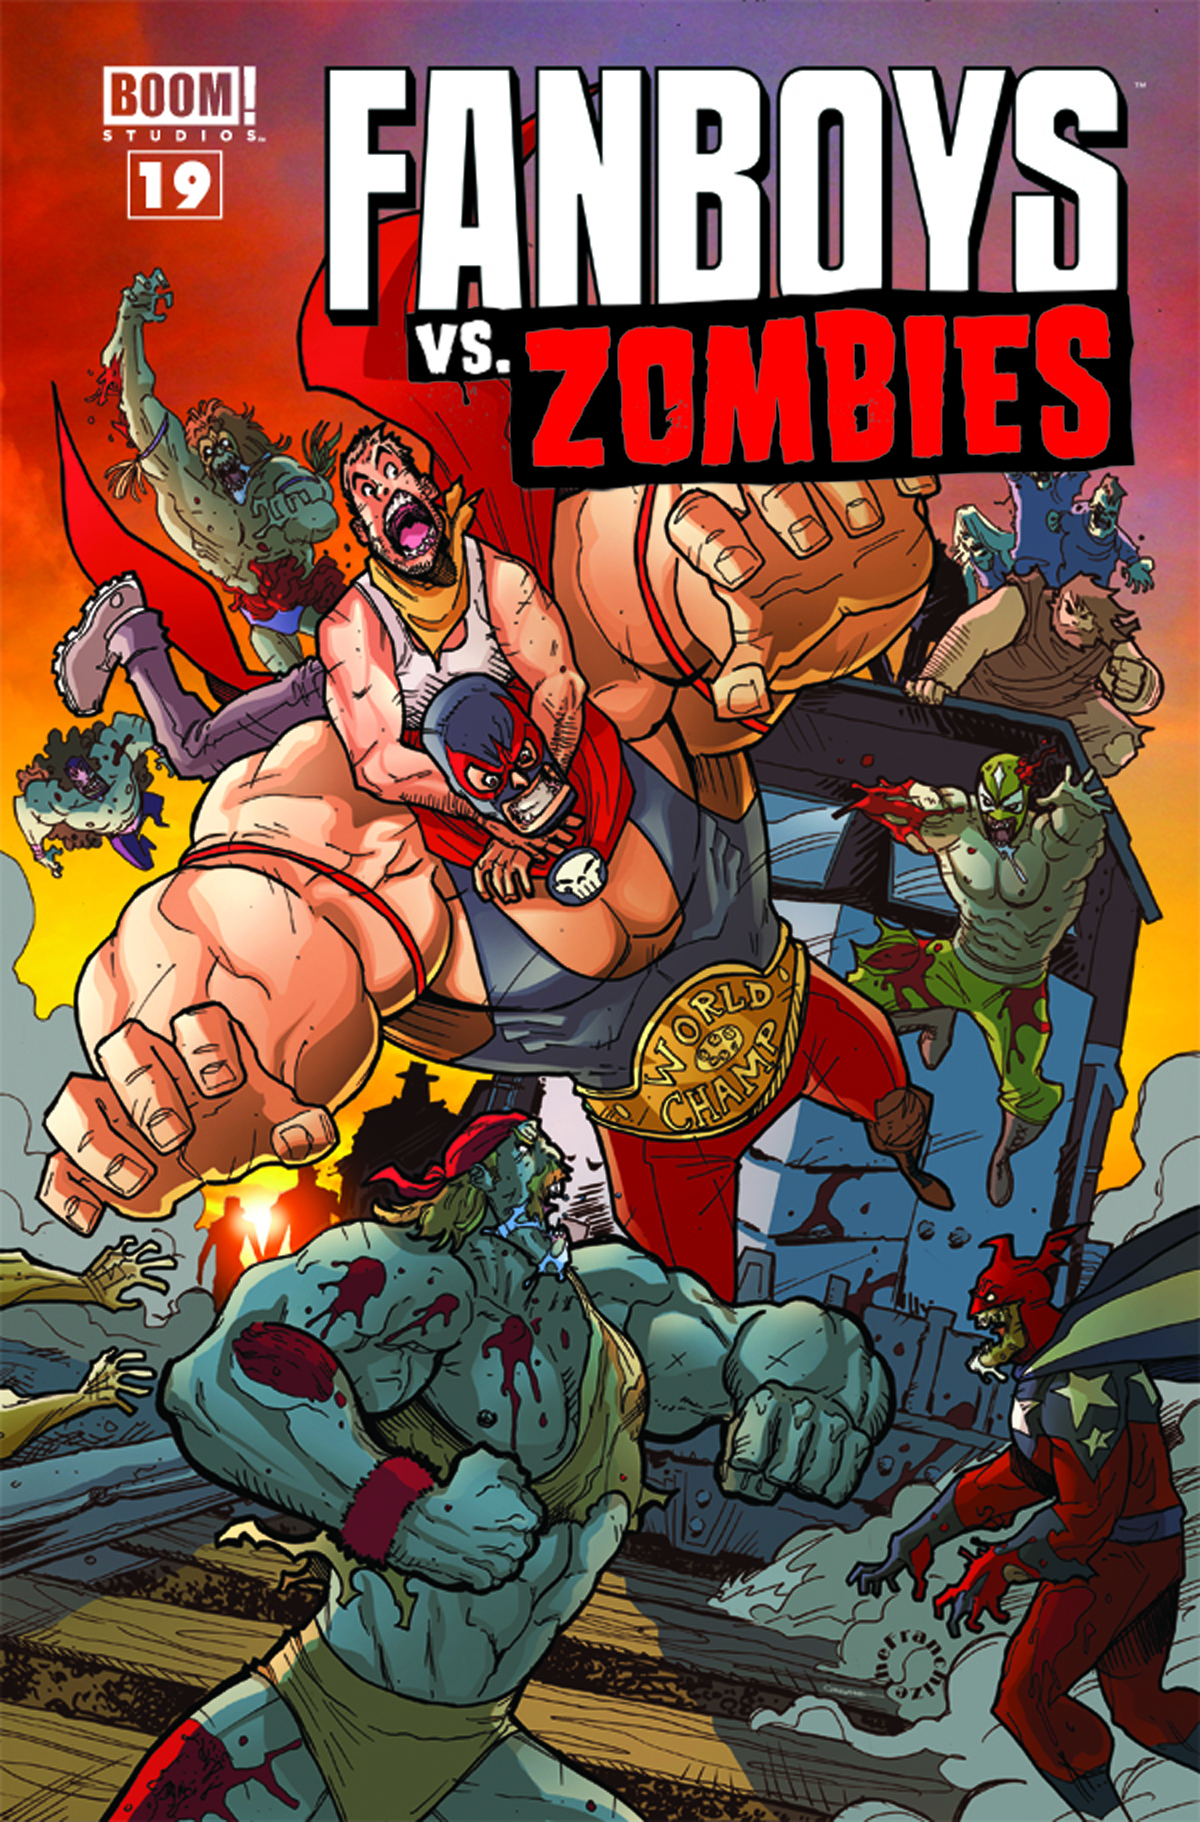 FANBOYS VS ZOMBIES #19